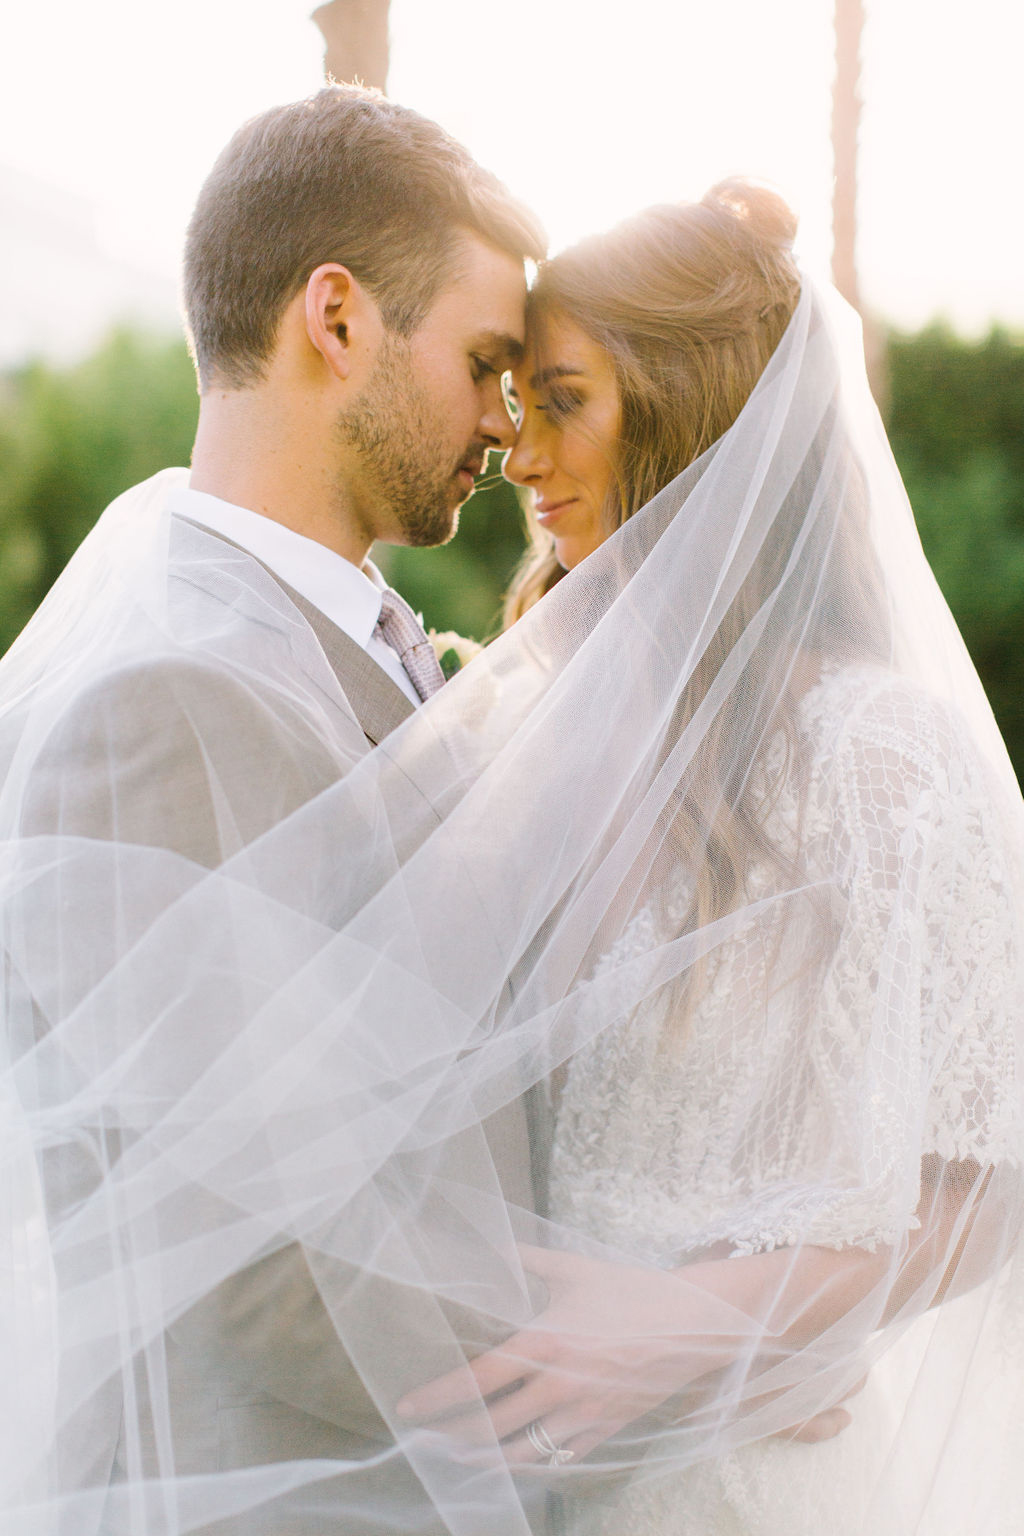 wedding portrait couple embracing with bride's veil flowing around them